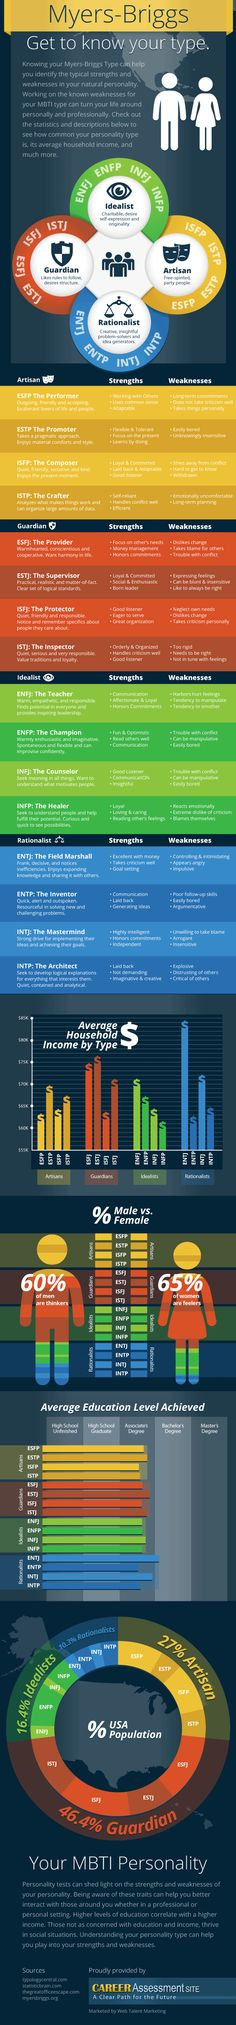 Myers-Briggs Personality Socio-Economic Status Infographic I'm an ENTJ. I love Myers-Briggs. Mbti Personality, Work Personality Test, Mental Training, Myers Briggs Personalities, Entj, Infj Infp, Kaizen, Leadership Development, Training